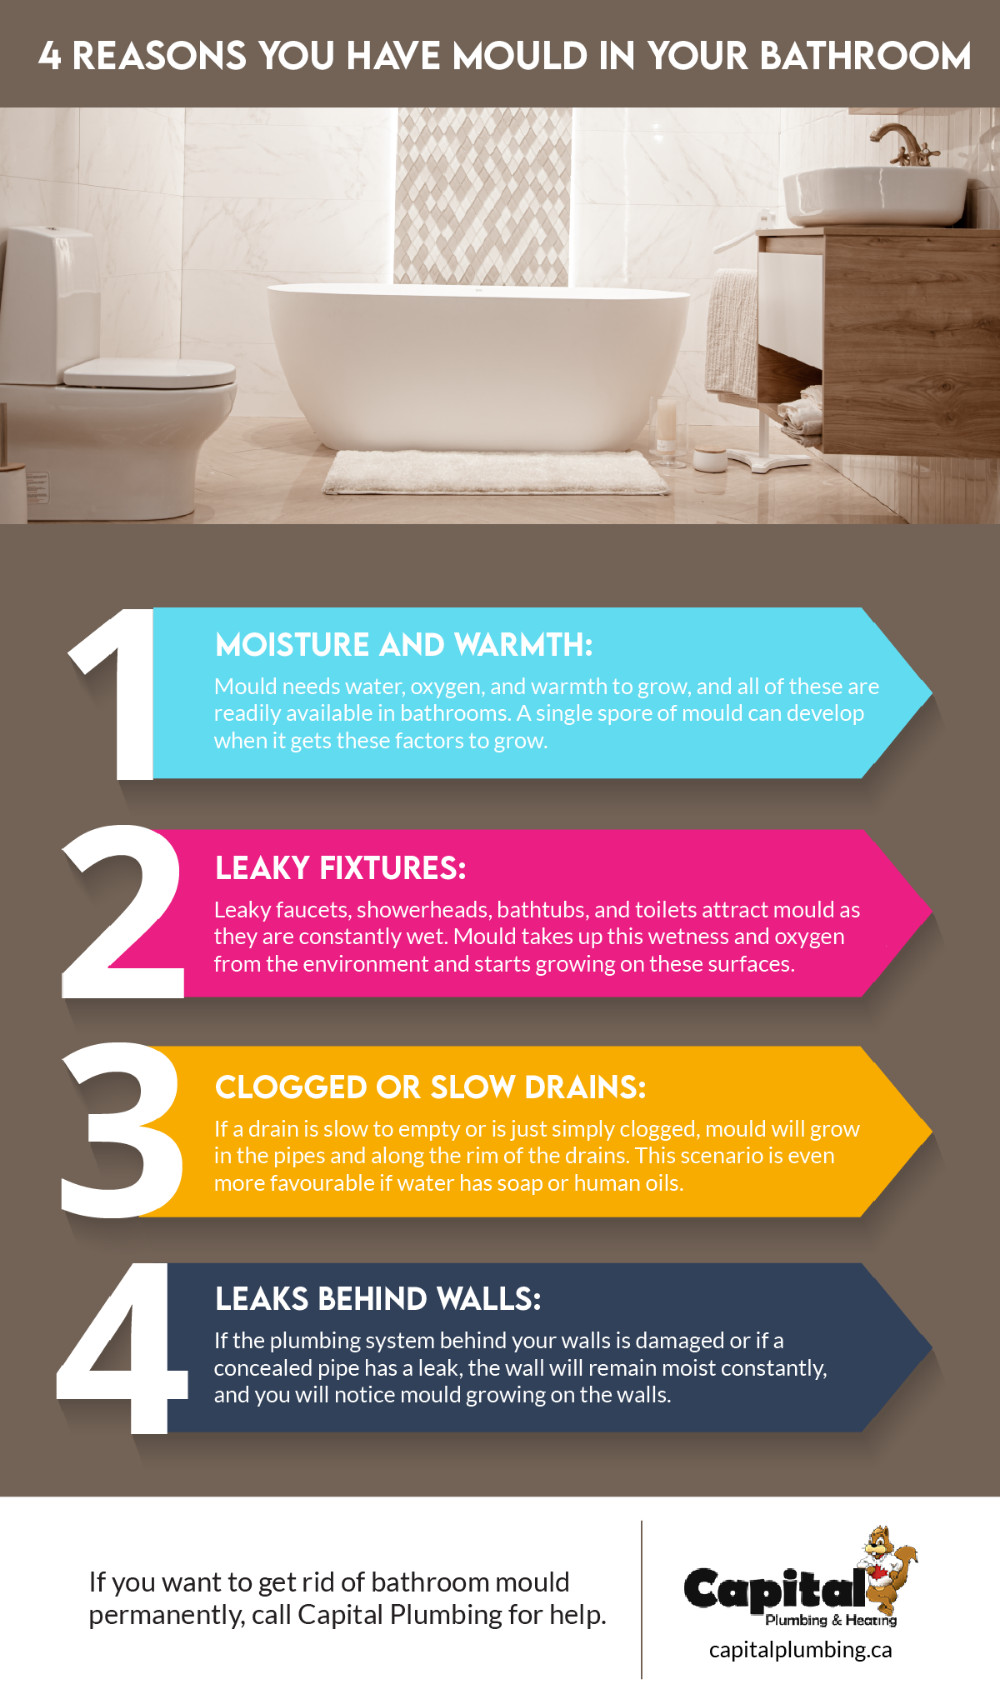 Reasons You Have Mould in Your Bathroom